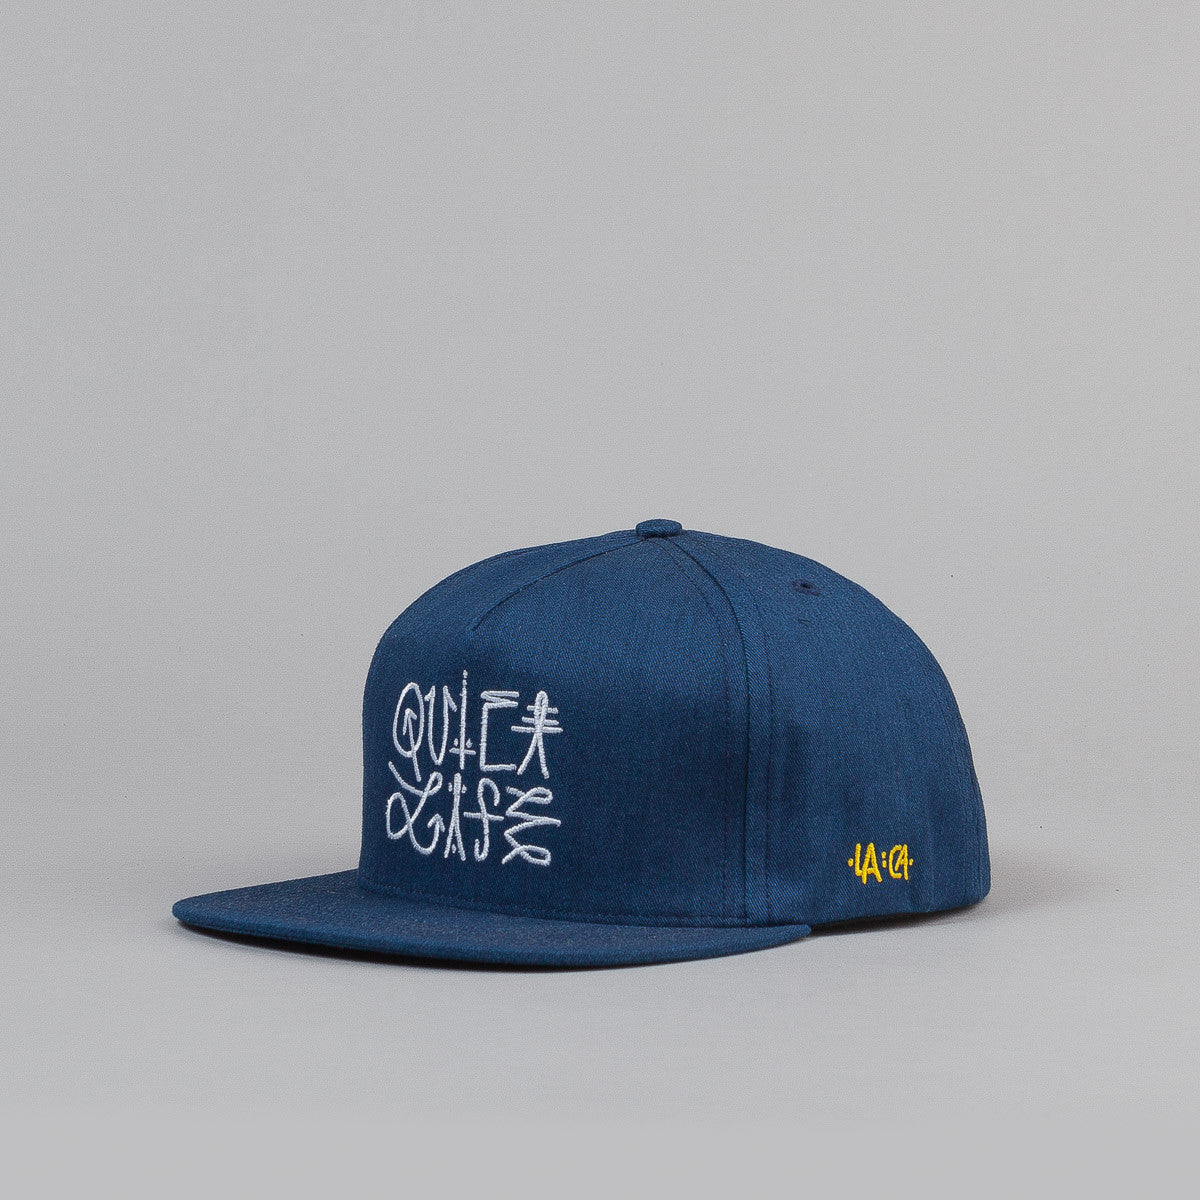 The Quiet Life Hudson Snapback Cap